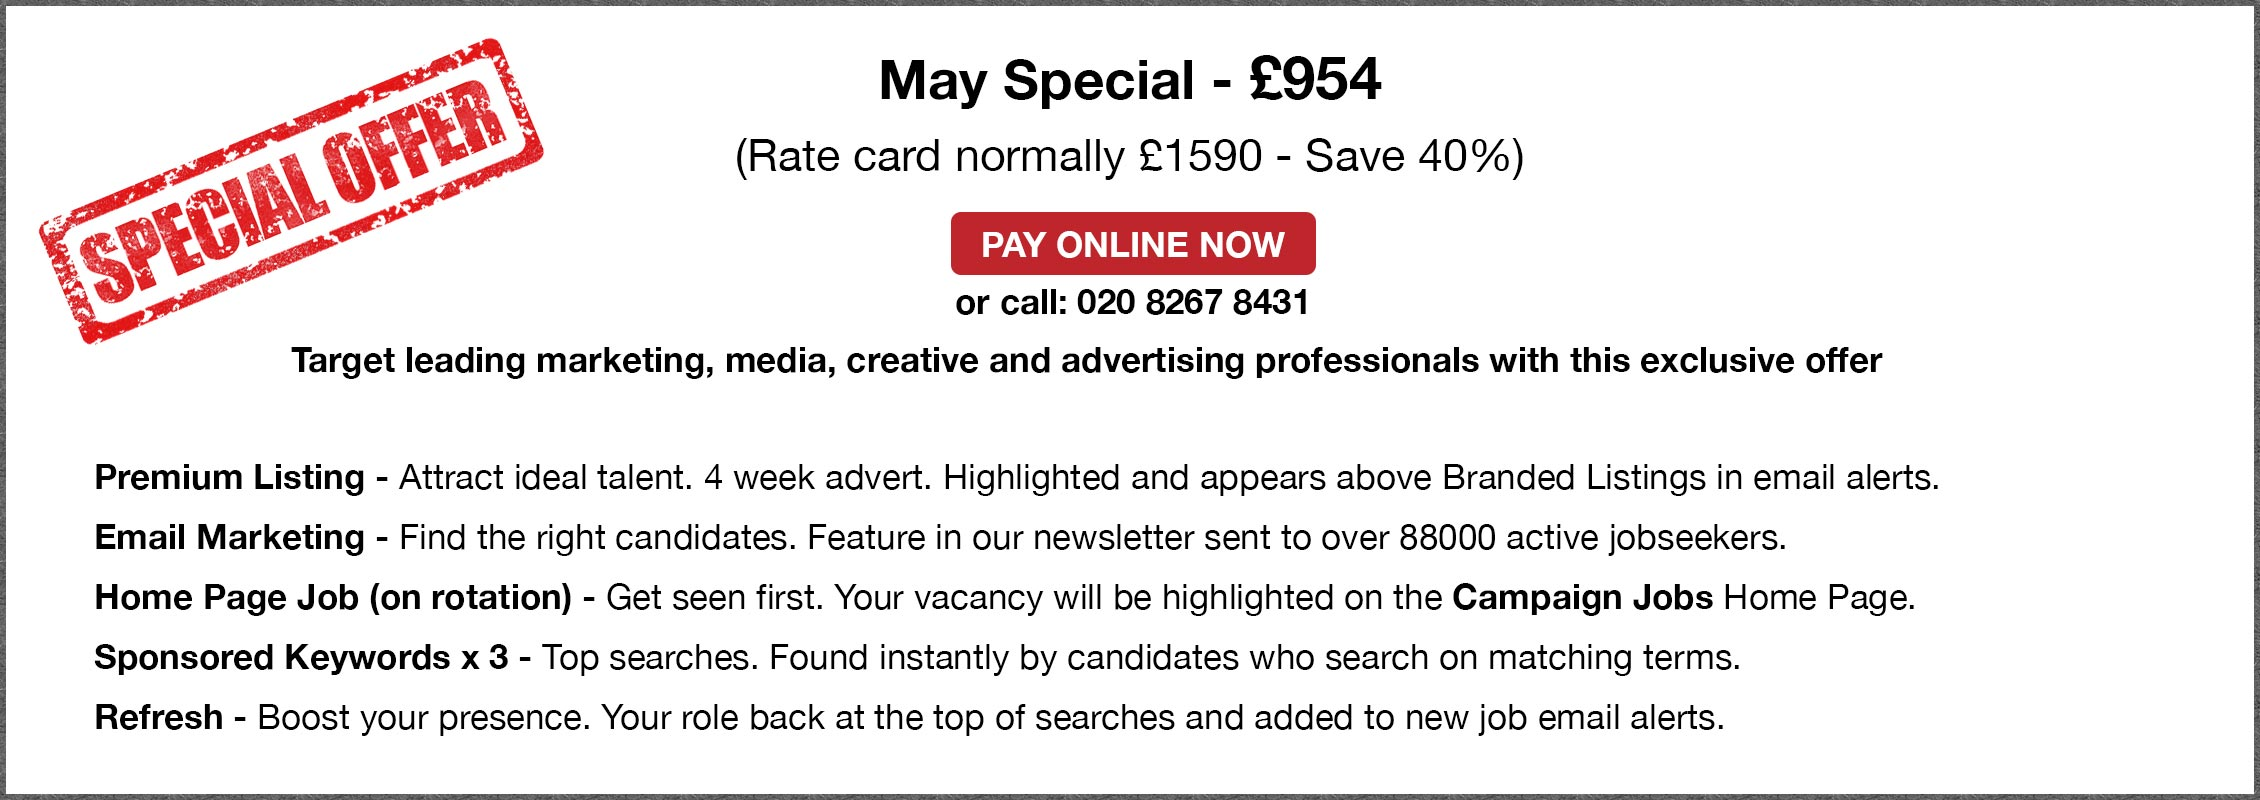 Special Offer. May Special - £954.